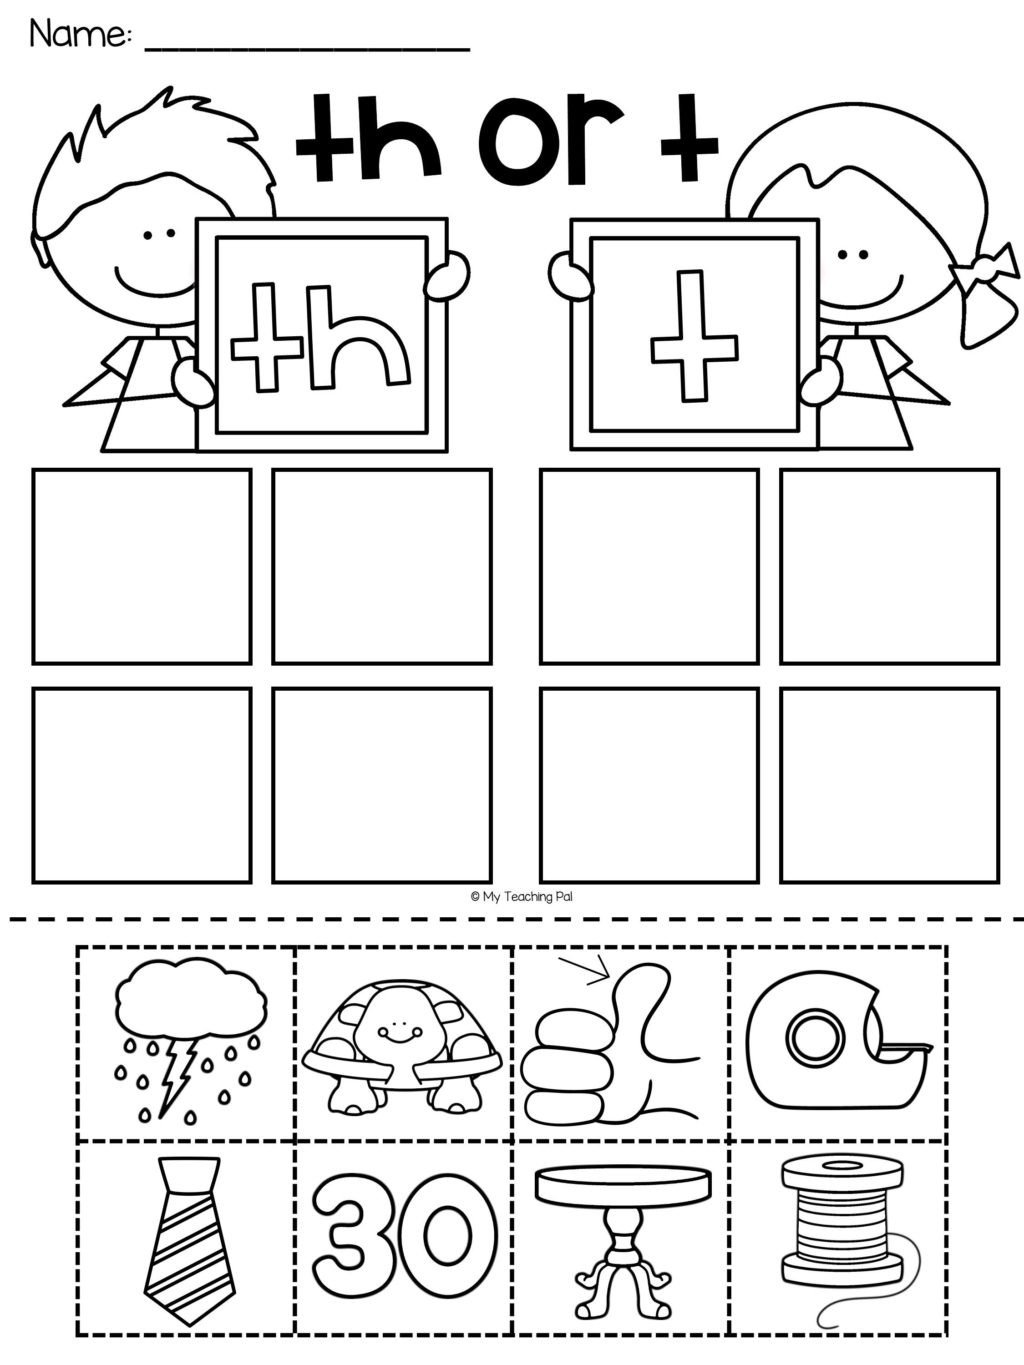 worksheets for kindergarten students picture inspirations worksheet th packet digraphs distance learning 1024x1365